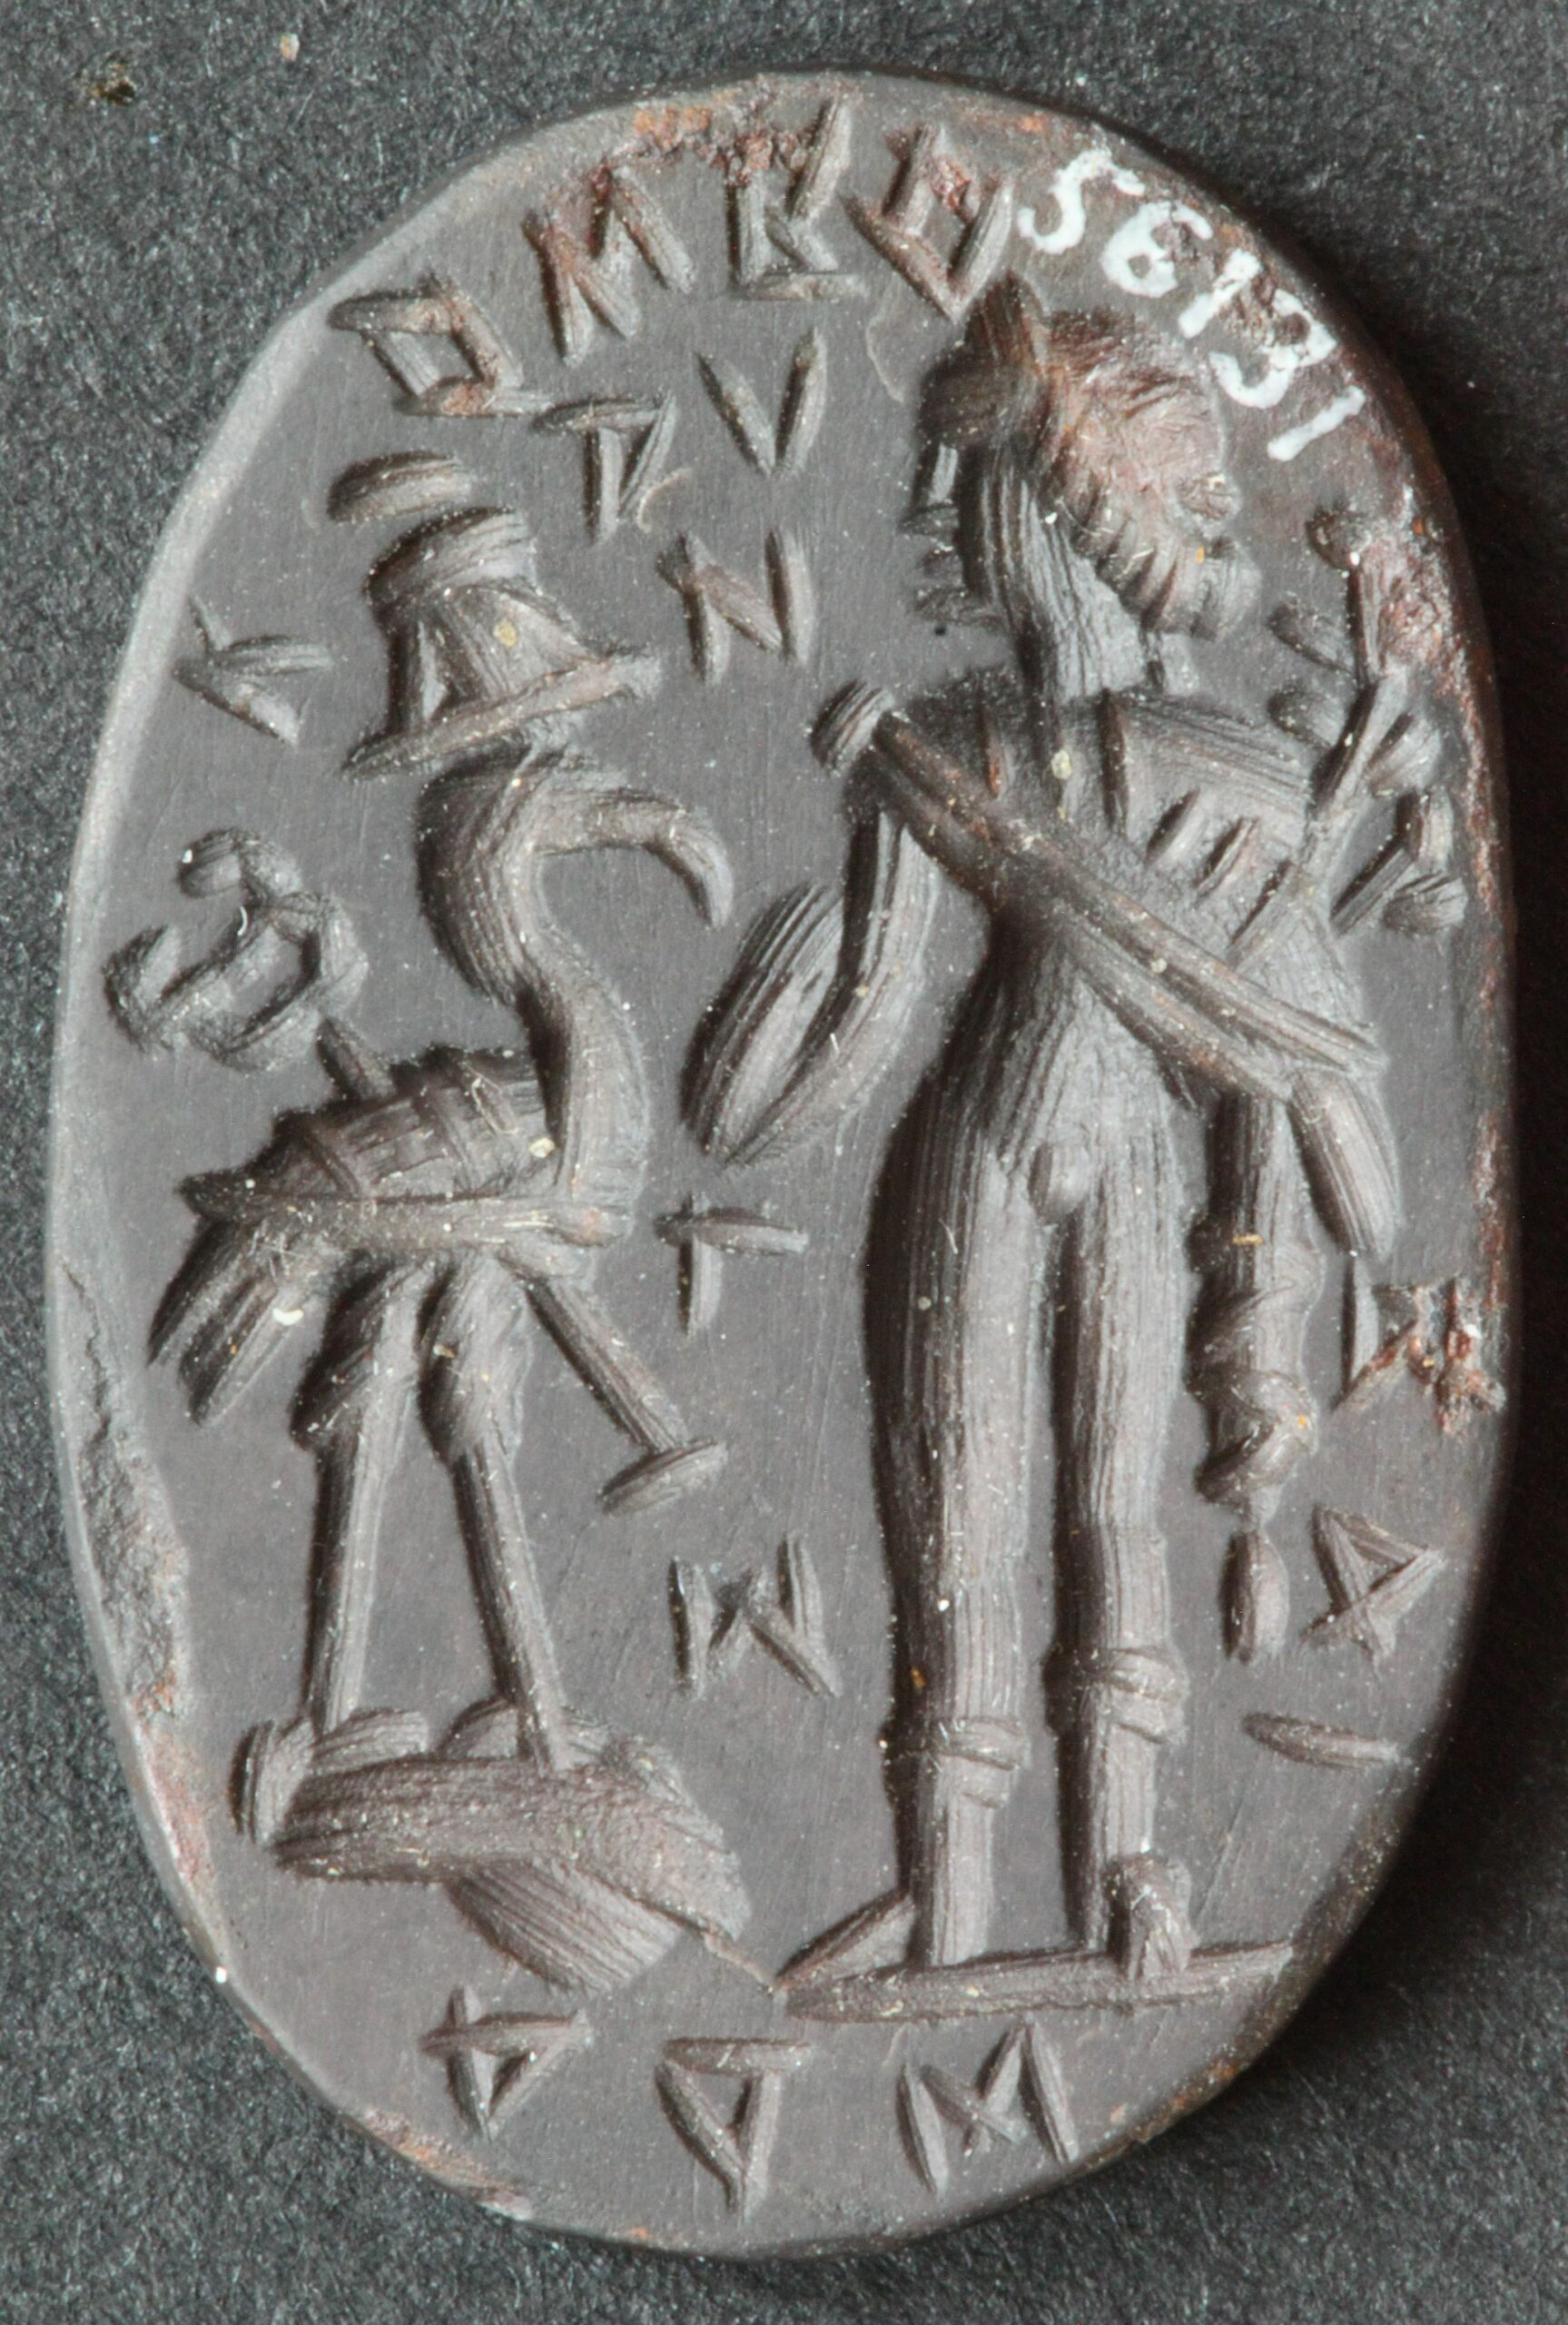 Thoth-ibis with Hermes and various onomata barbara. 3rd c. CE, courtesy of the Campbell Bonner Magical Gems Database.